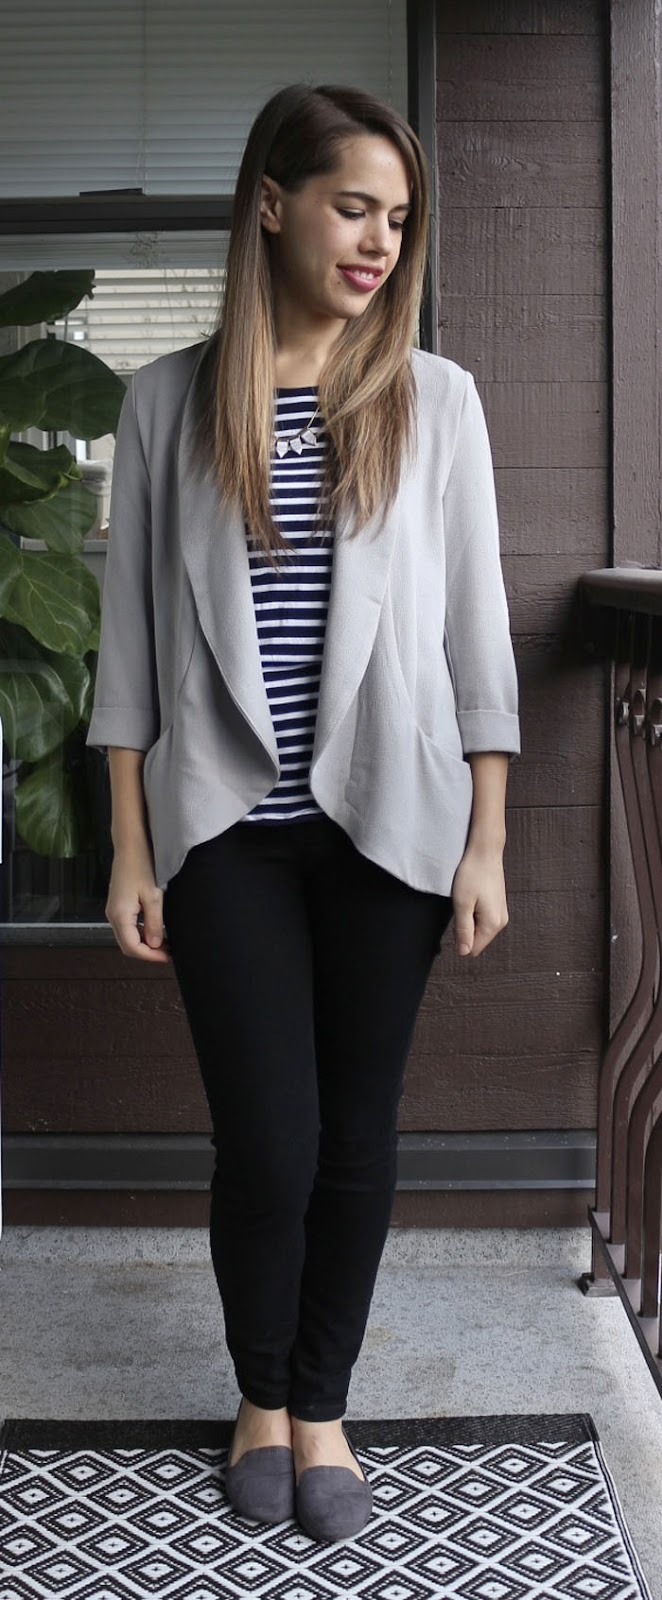 Jules in Flats - Forever 21 Blazer and H&M Striped Tee